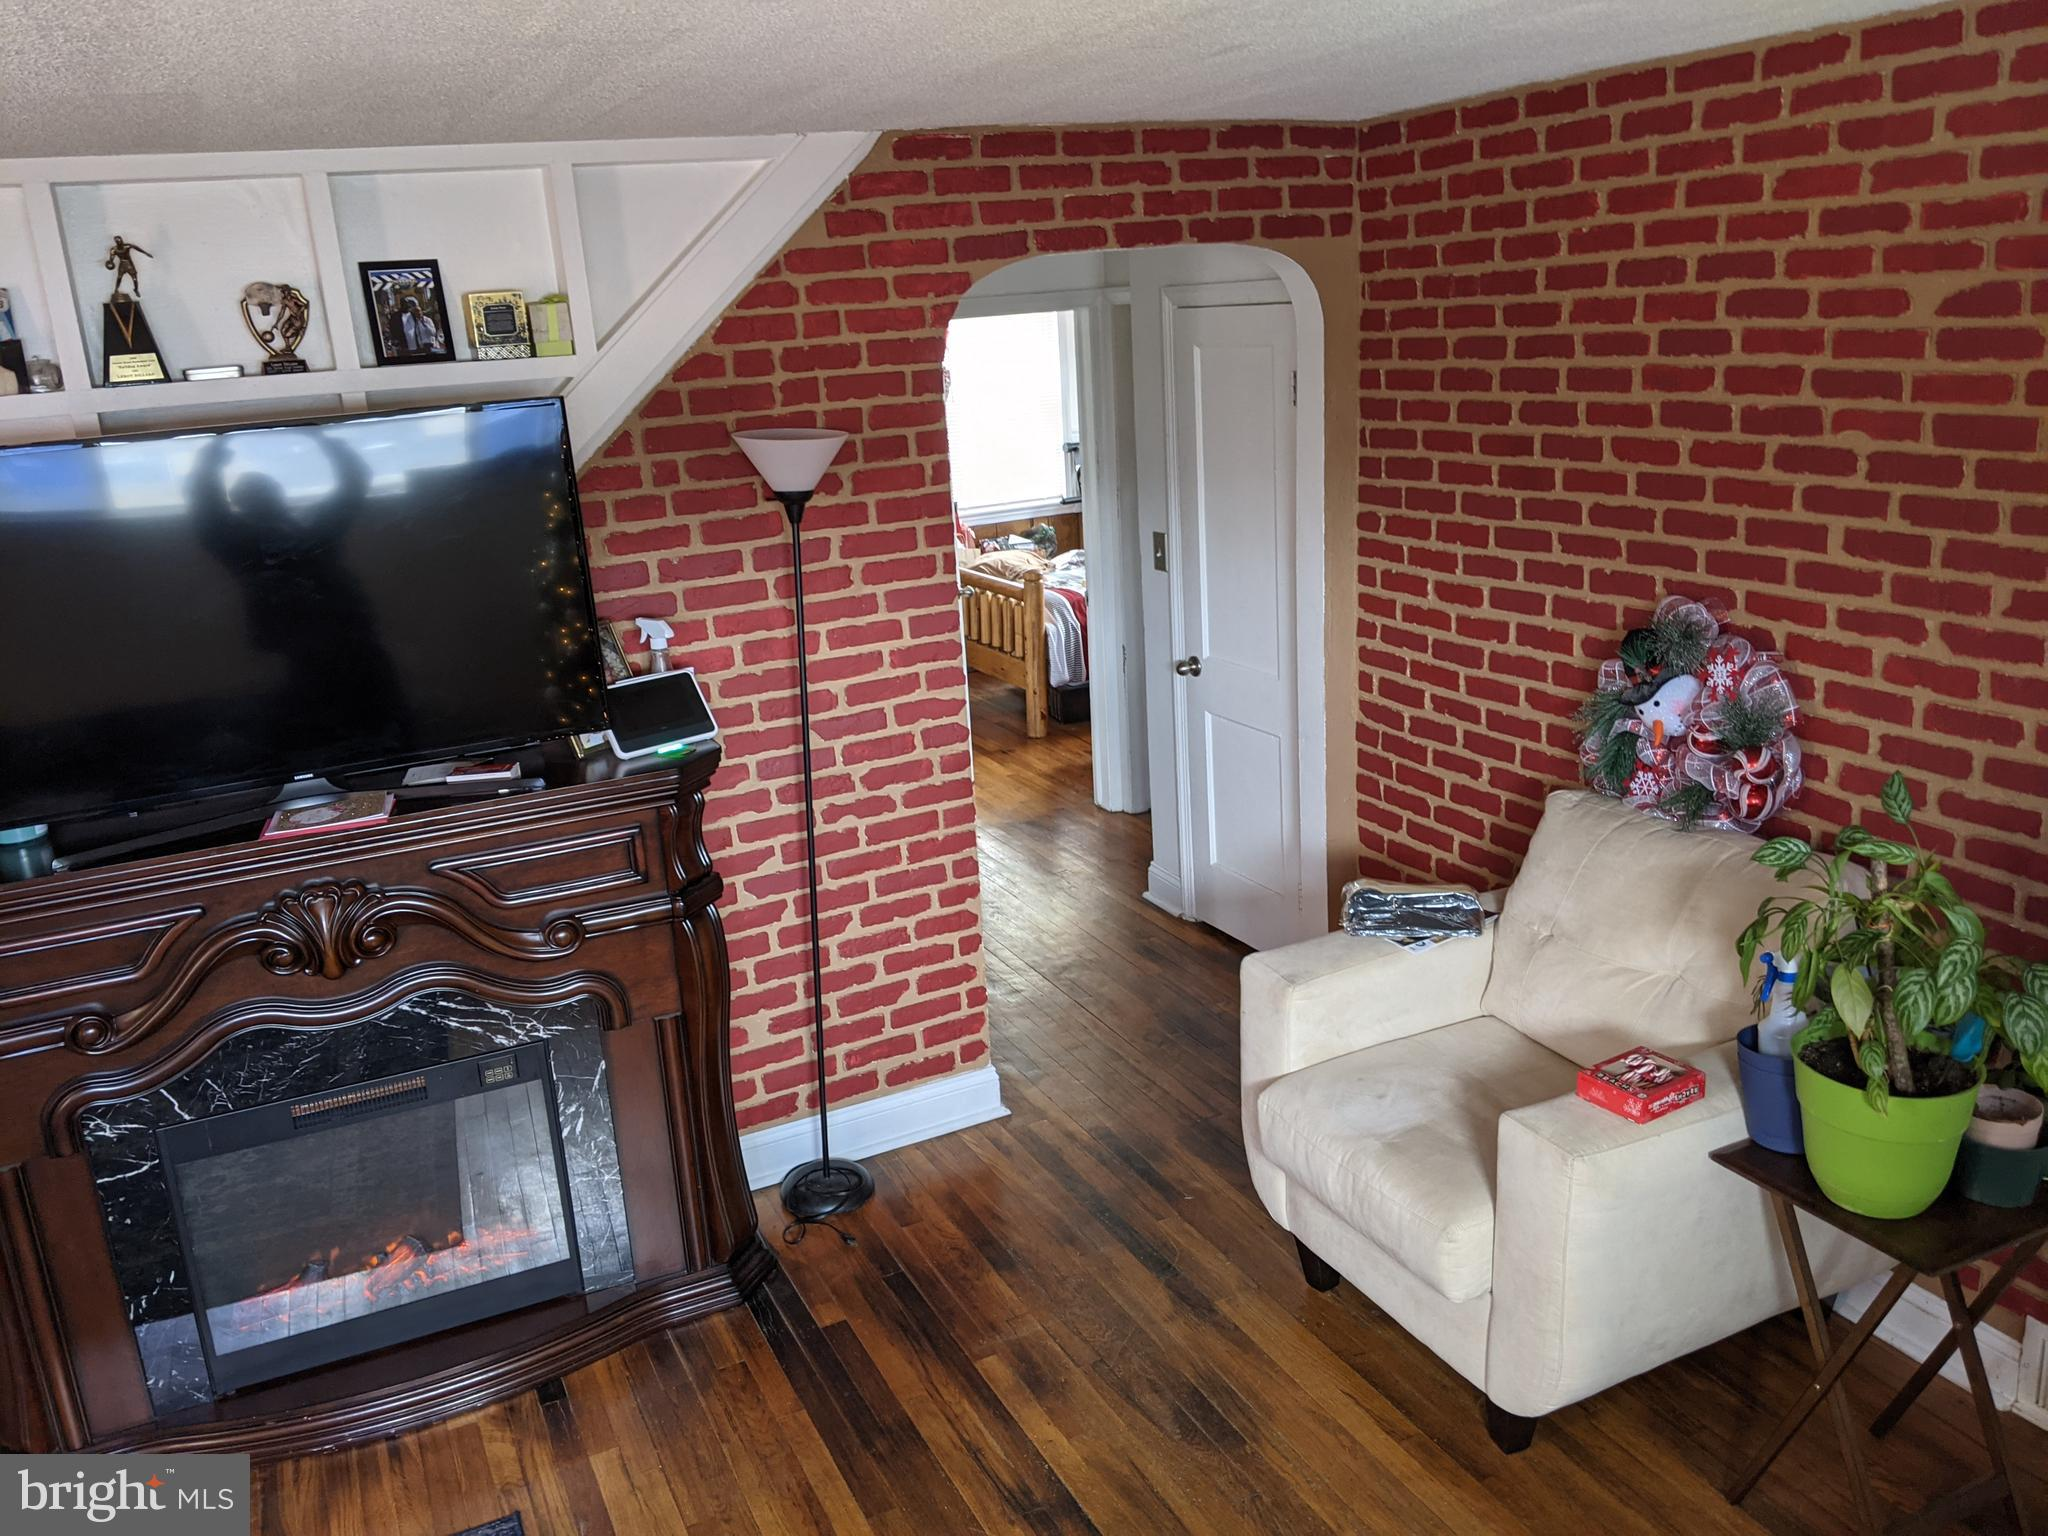 1805 BRIARCLIFF ROAD, BALTIMORE, Maryland 21234, 3 Bedrooms Bedrooms, ,1 BathroomBathrooms,Single Family,For Sale,1805 BRIARCLIFF ROAD,MDBC520138